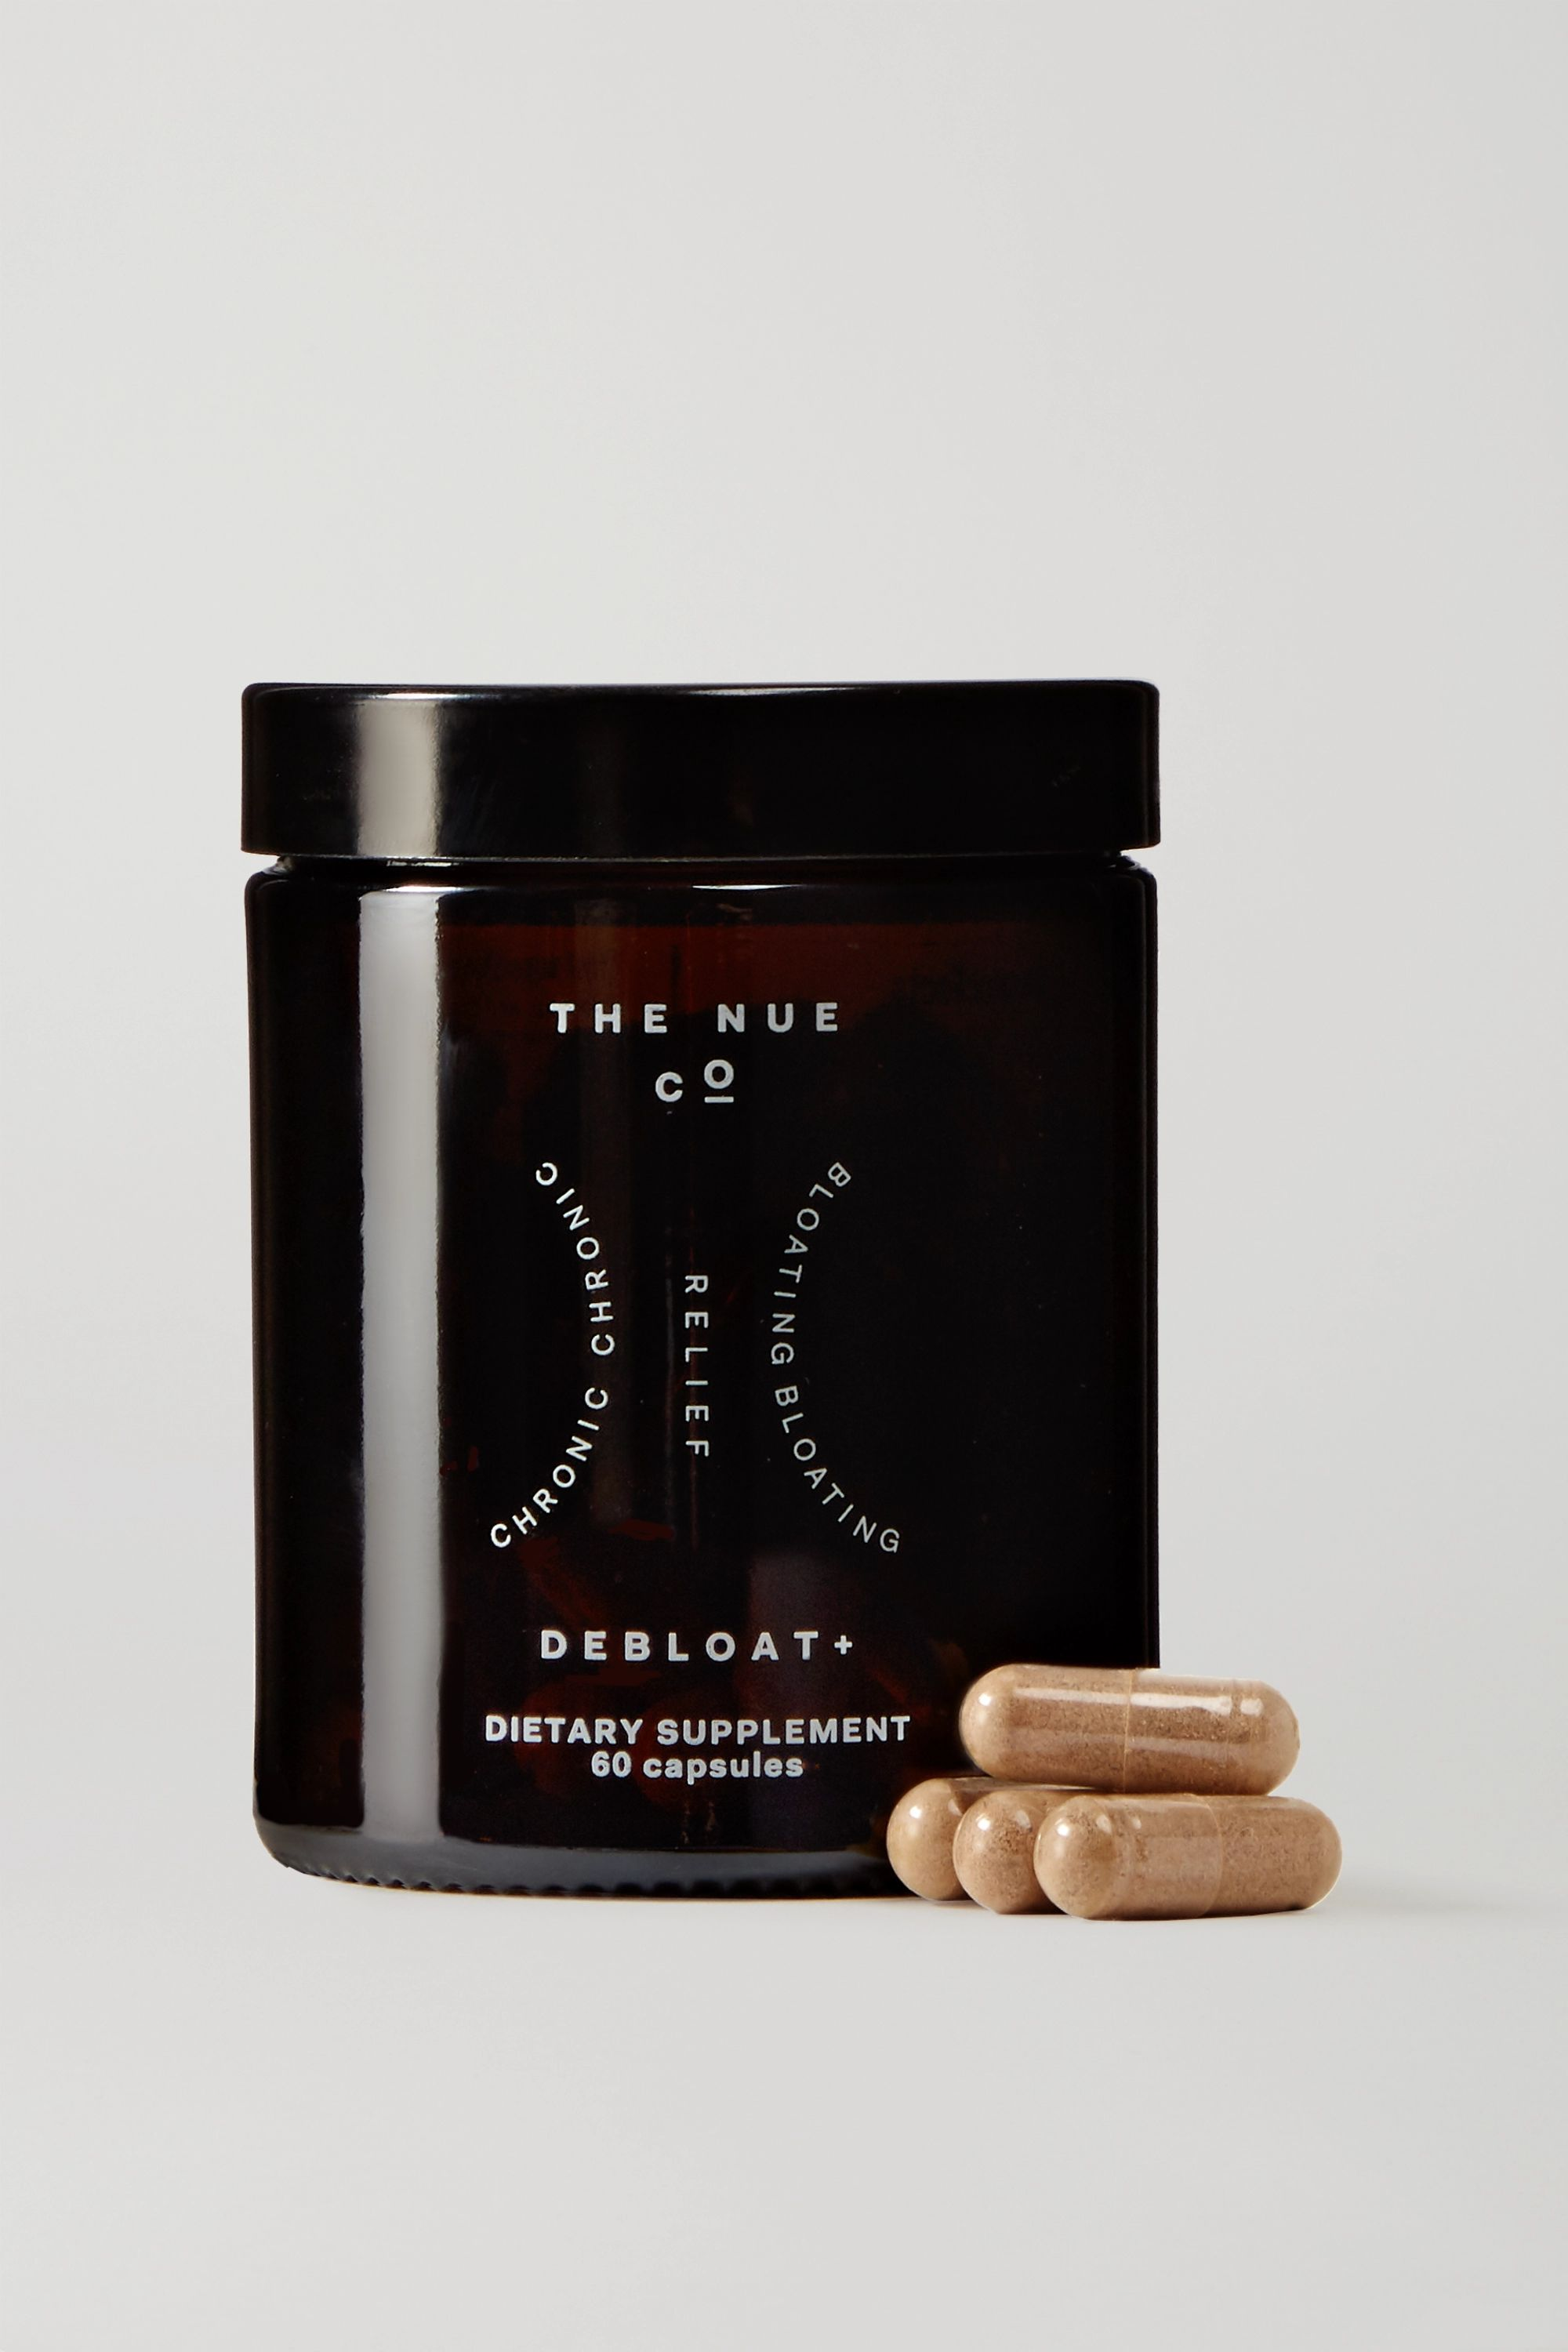 The Nue Co. Debloat + (60 capsules)